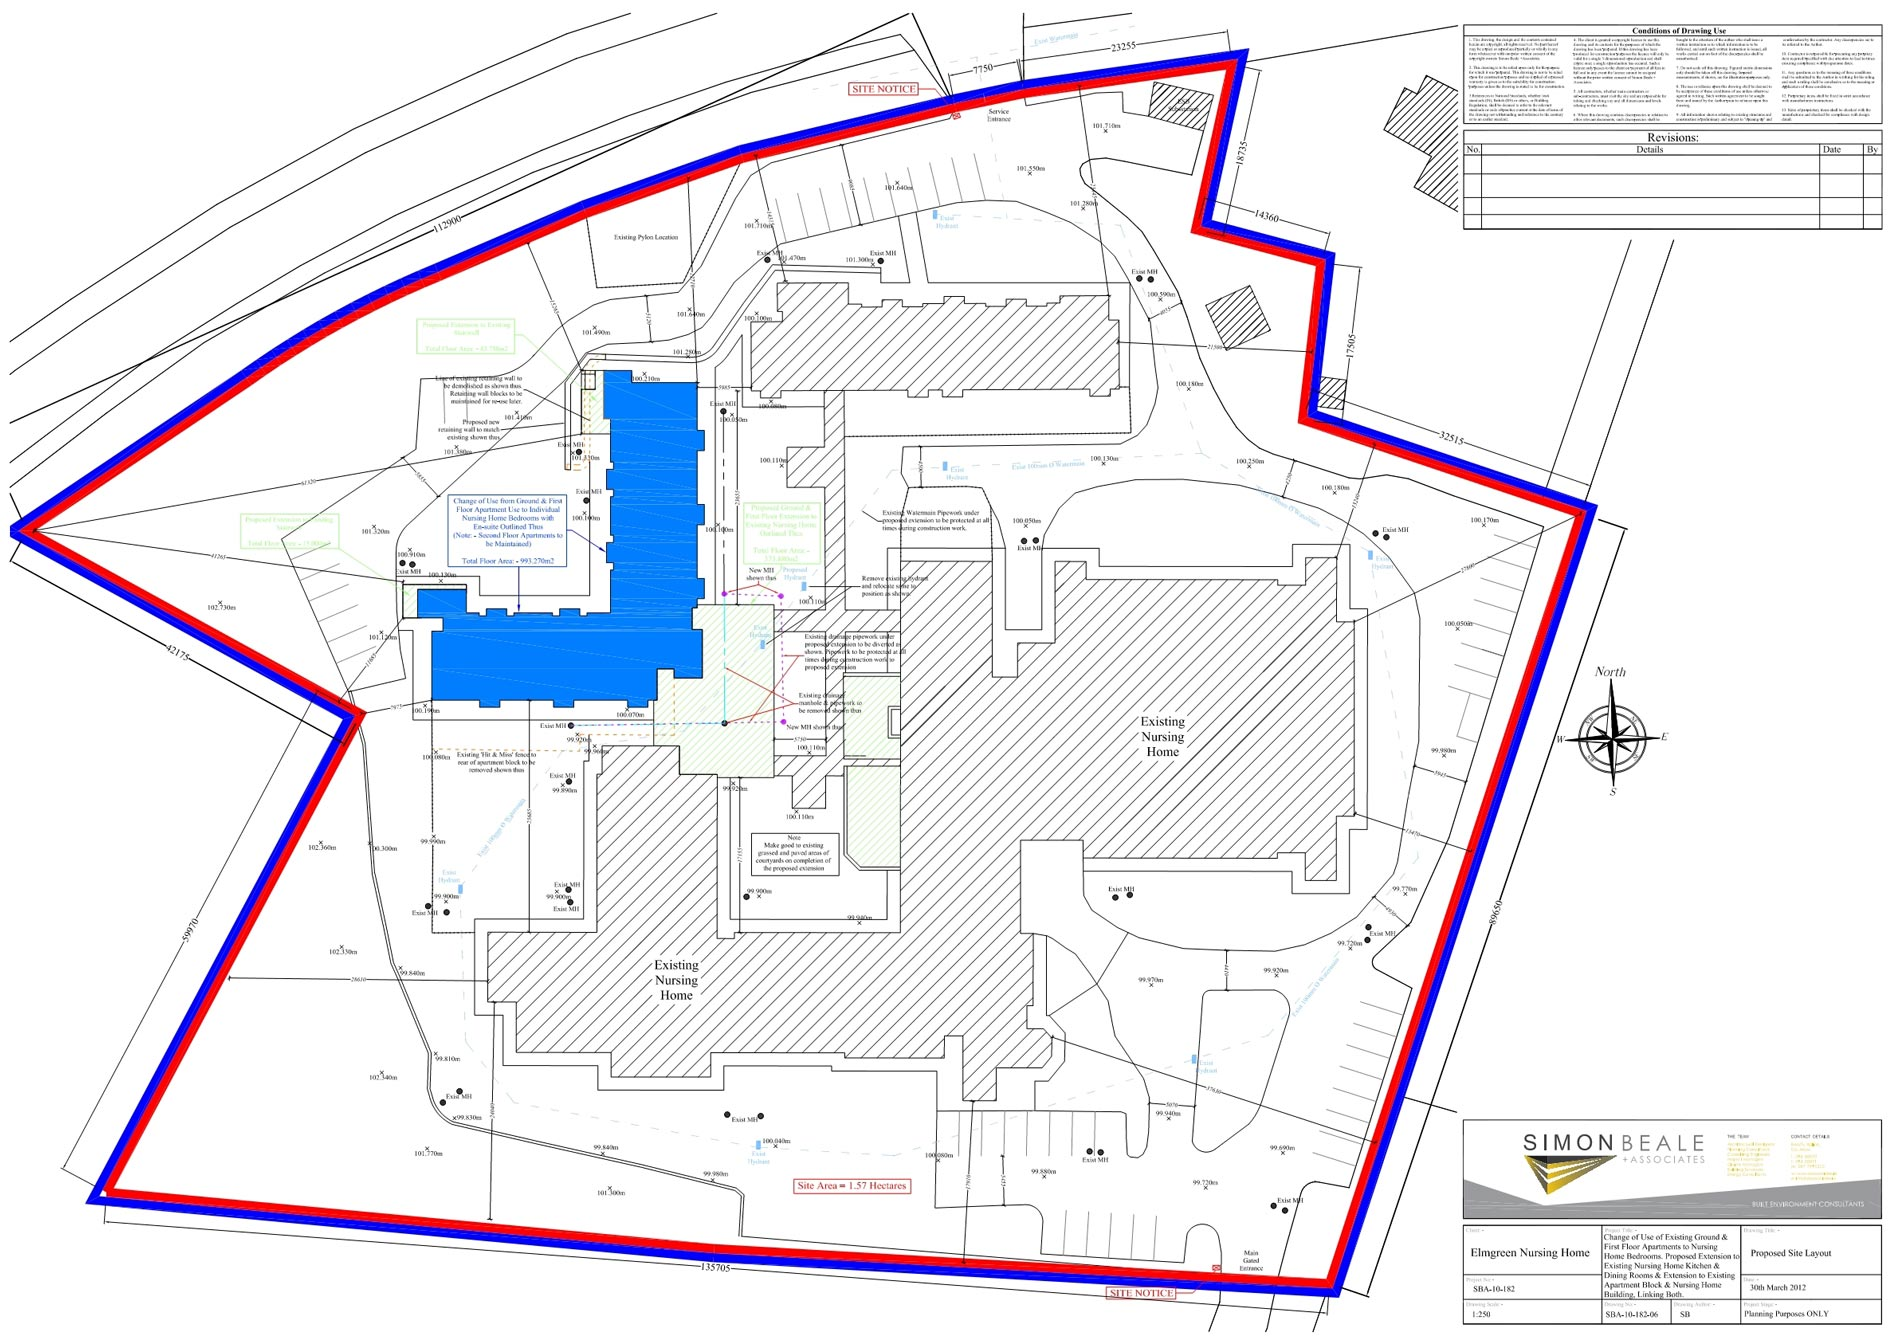 Sba-10-182-06_site_layout_pagenumber